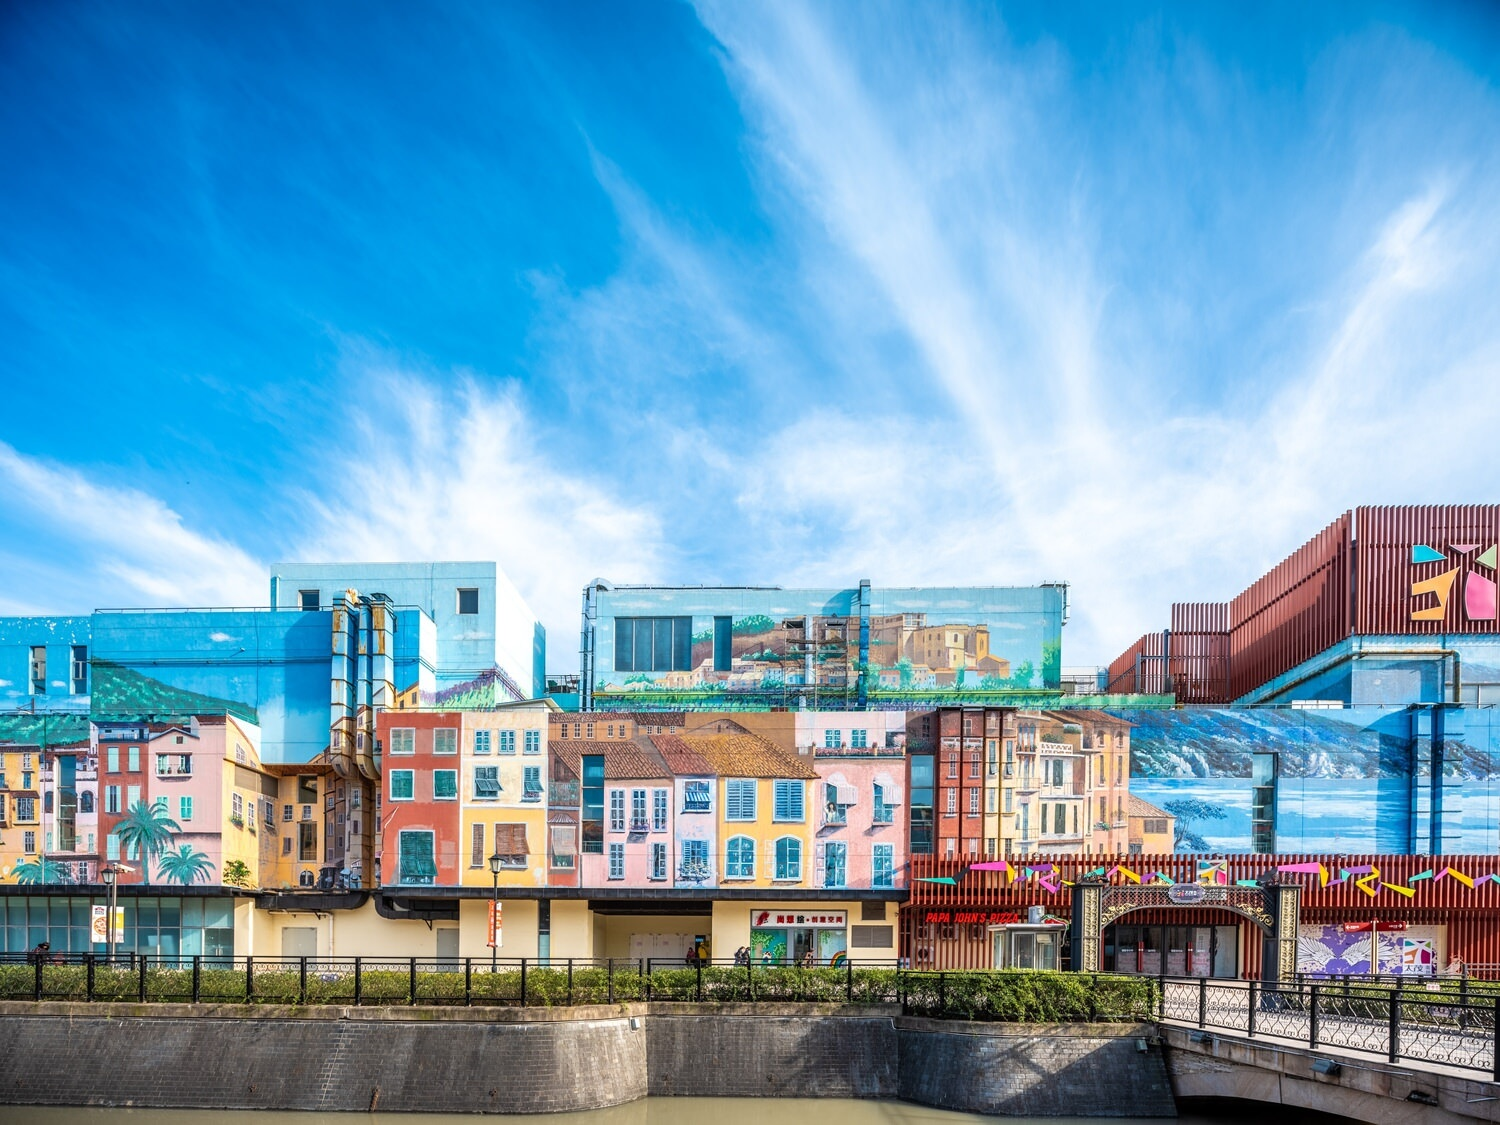 Some buildings that are painted to be more colorful and whimsical than they would be normally along a river.